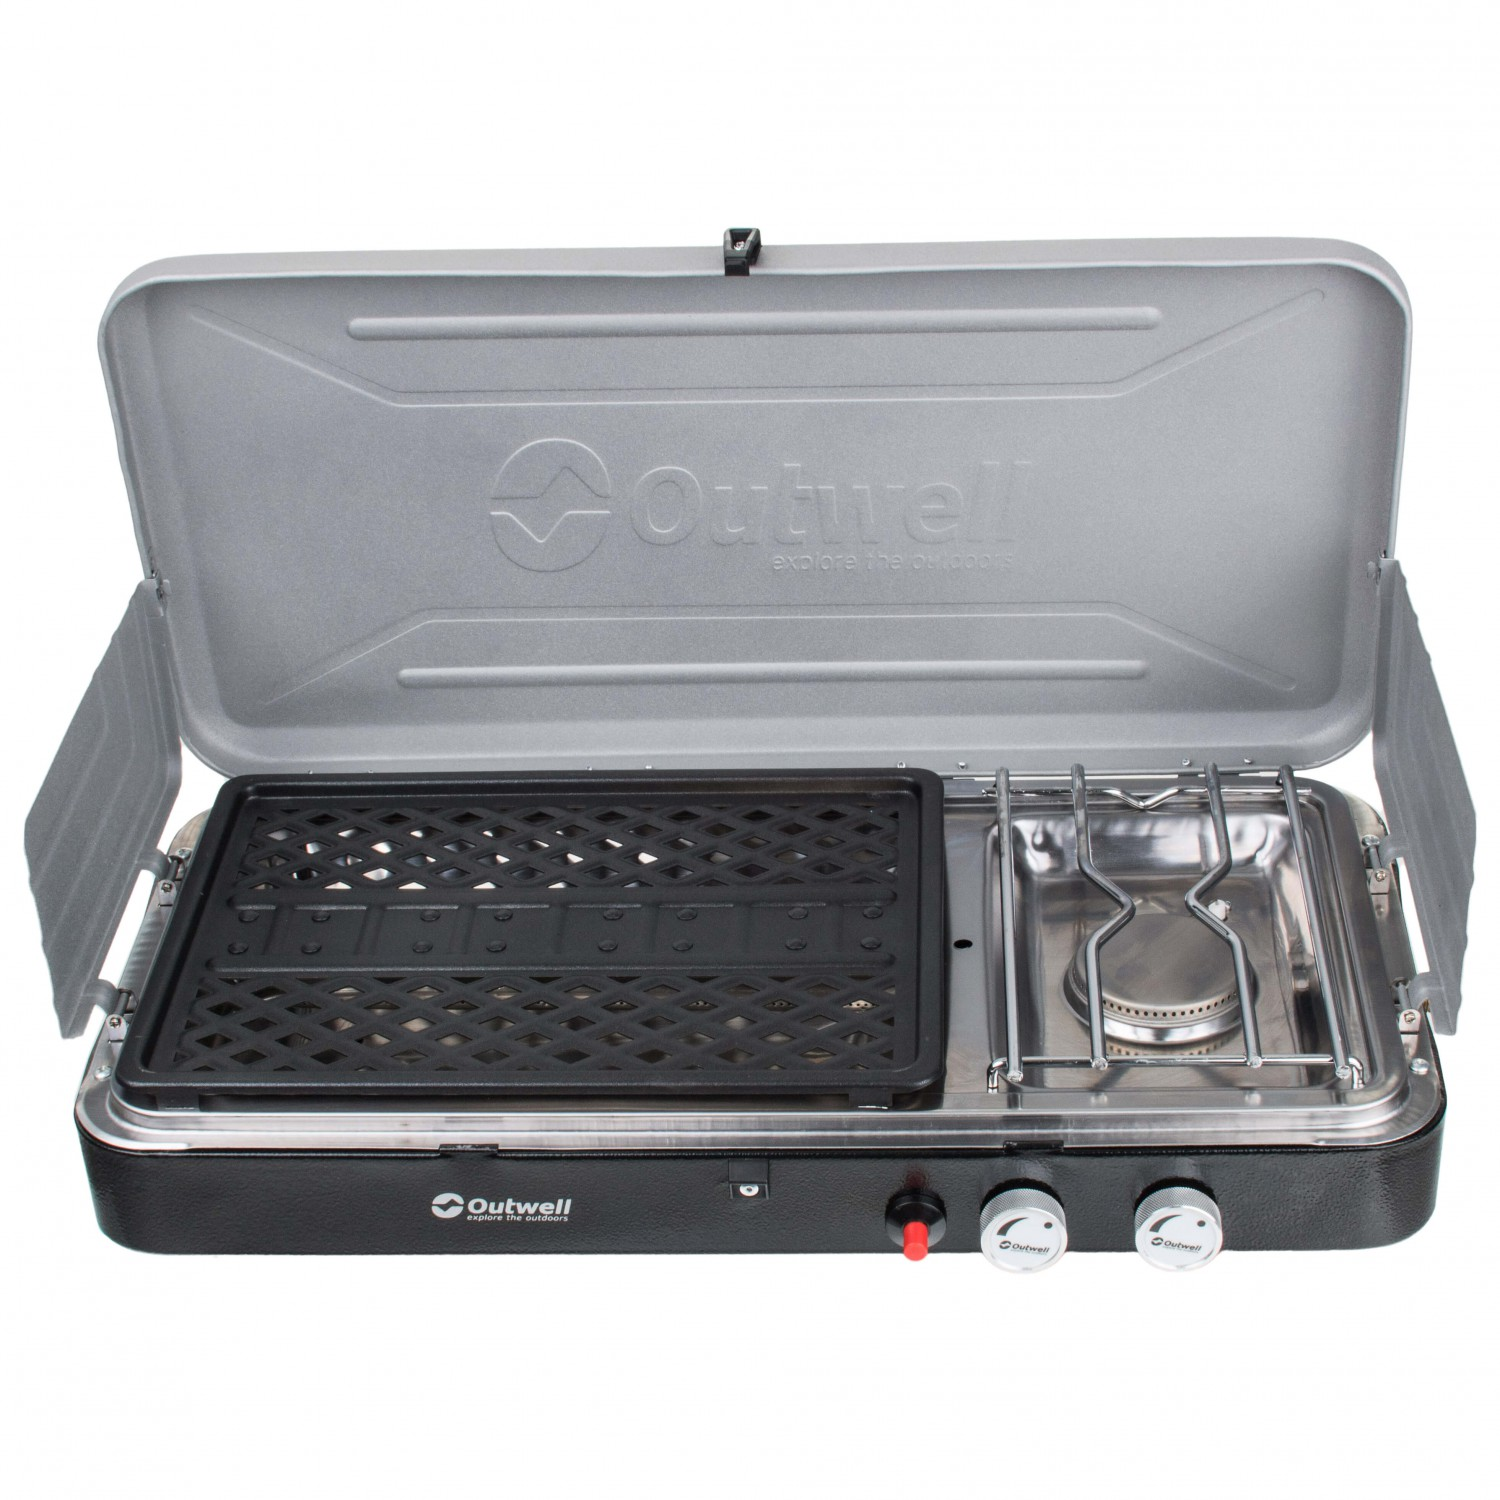 Gas Stove With Grill ~ Outwell chef cooker burner stove with grill gas stoves